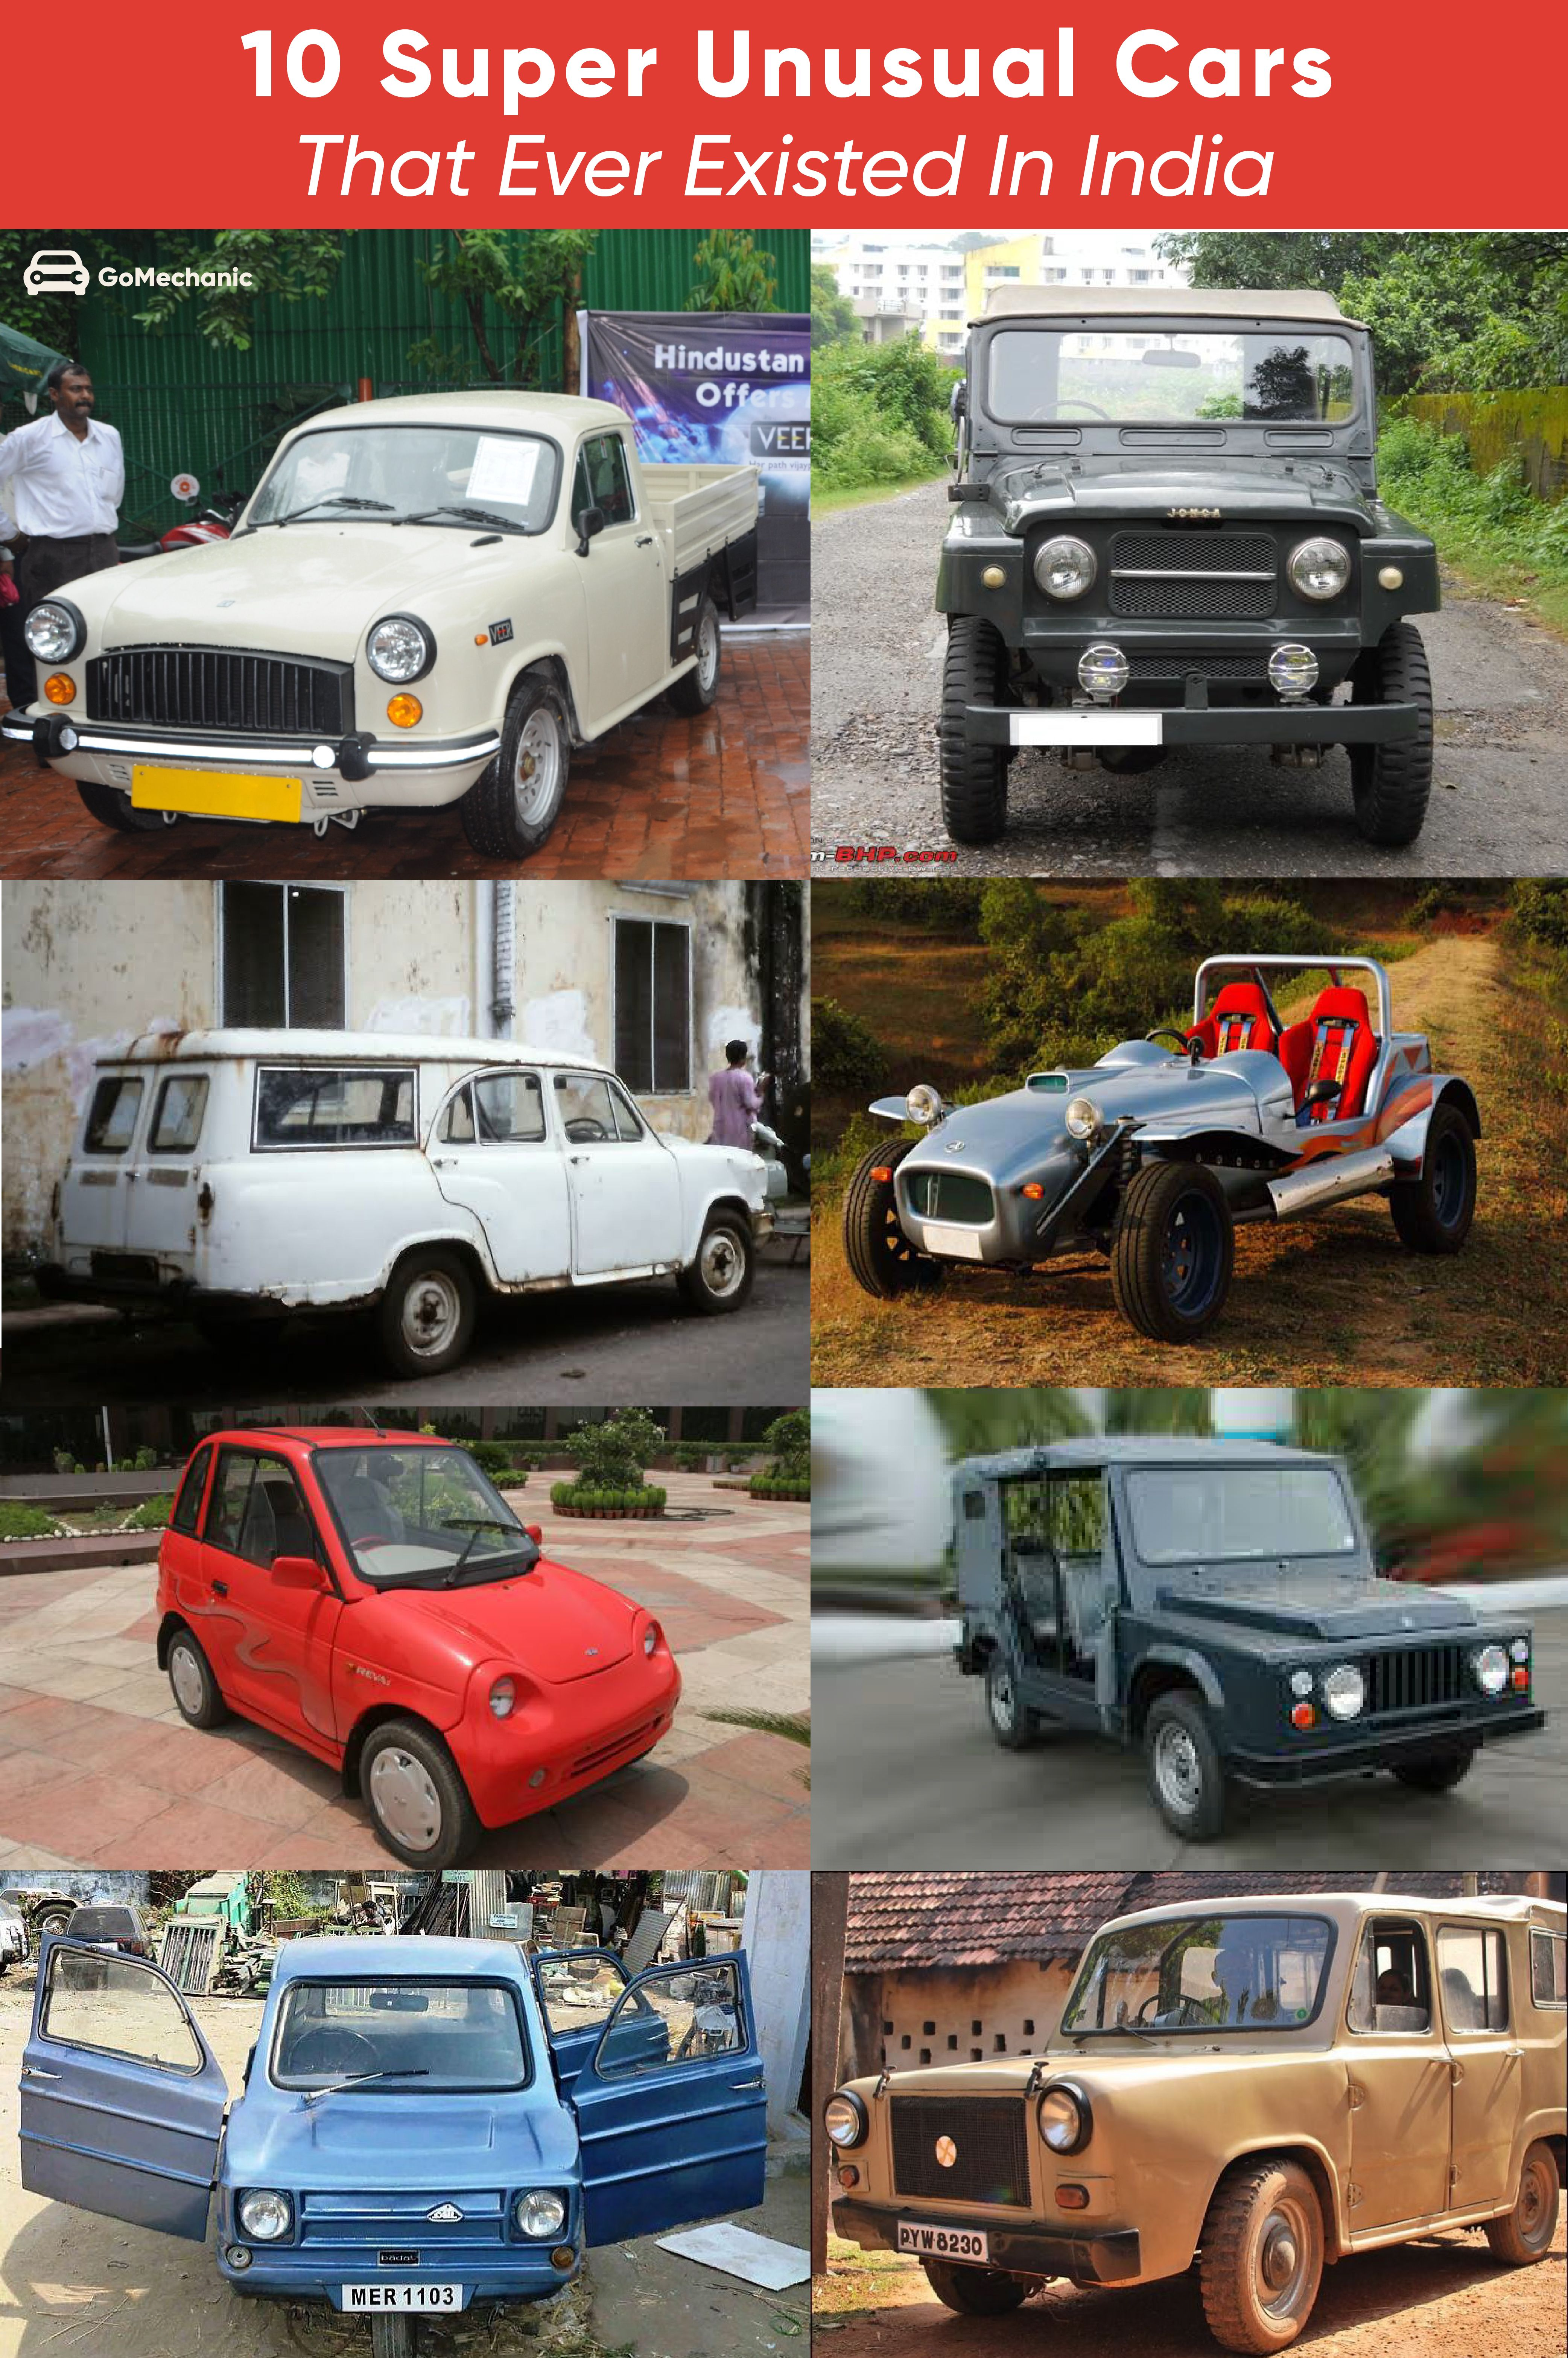 10 Super UNUSUAL Cars that ever existed in India in 2020